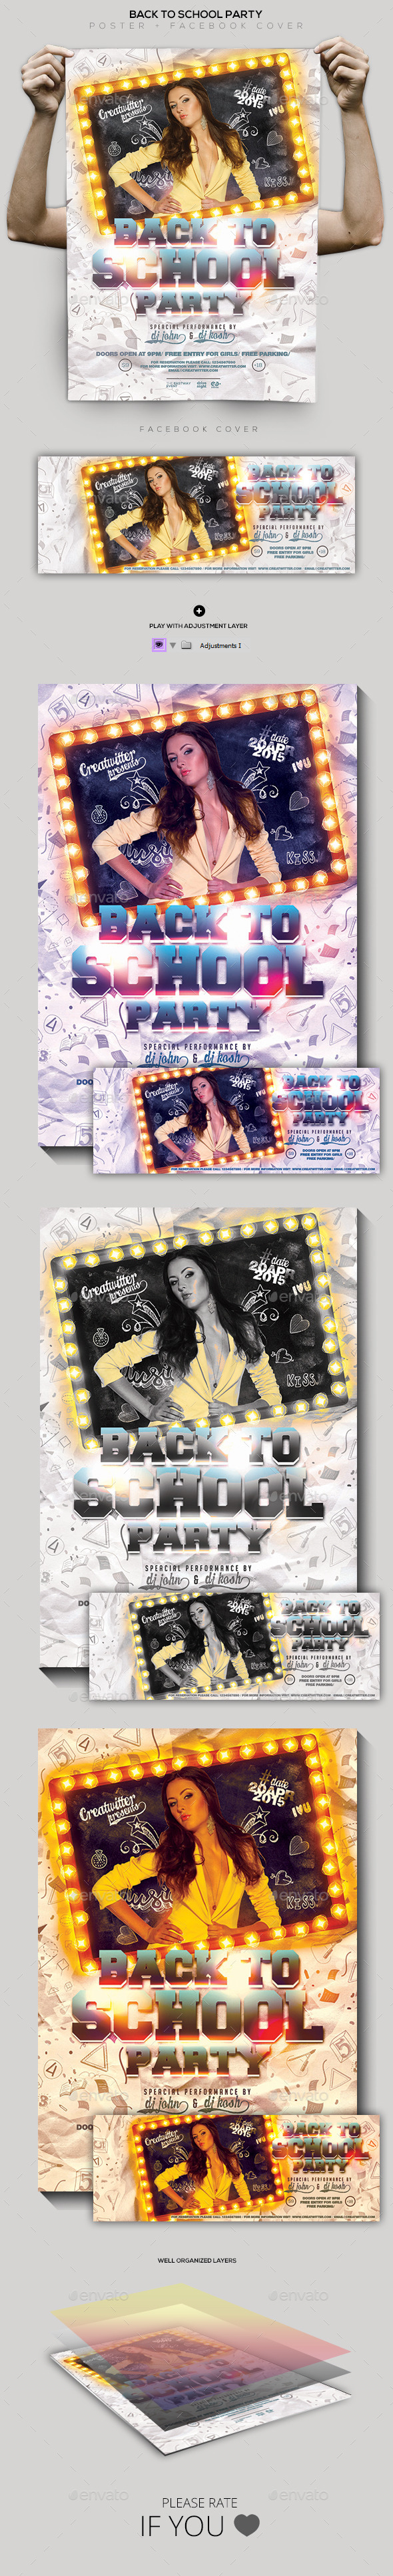 Back to School Party Flyer/ Poster/ Facebook Cover - Clubs & Parties Events